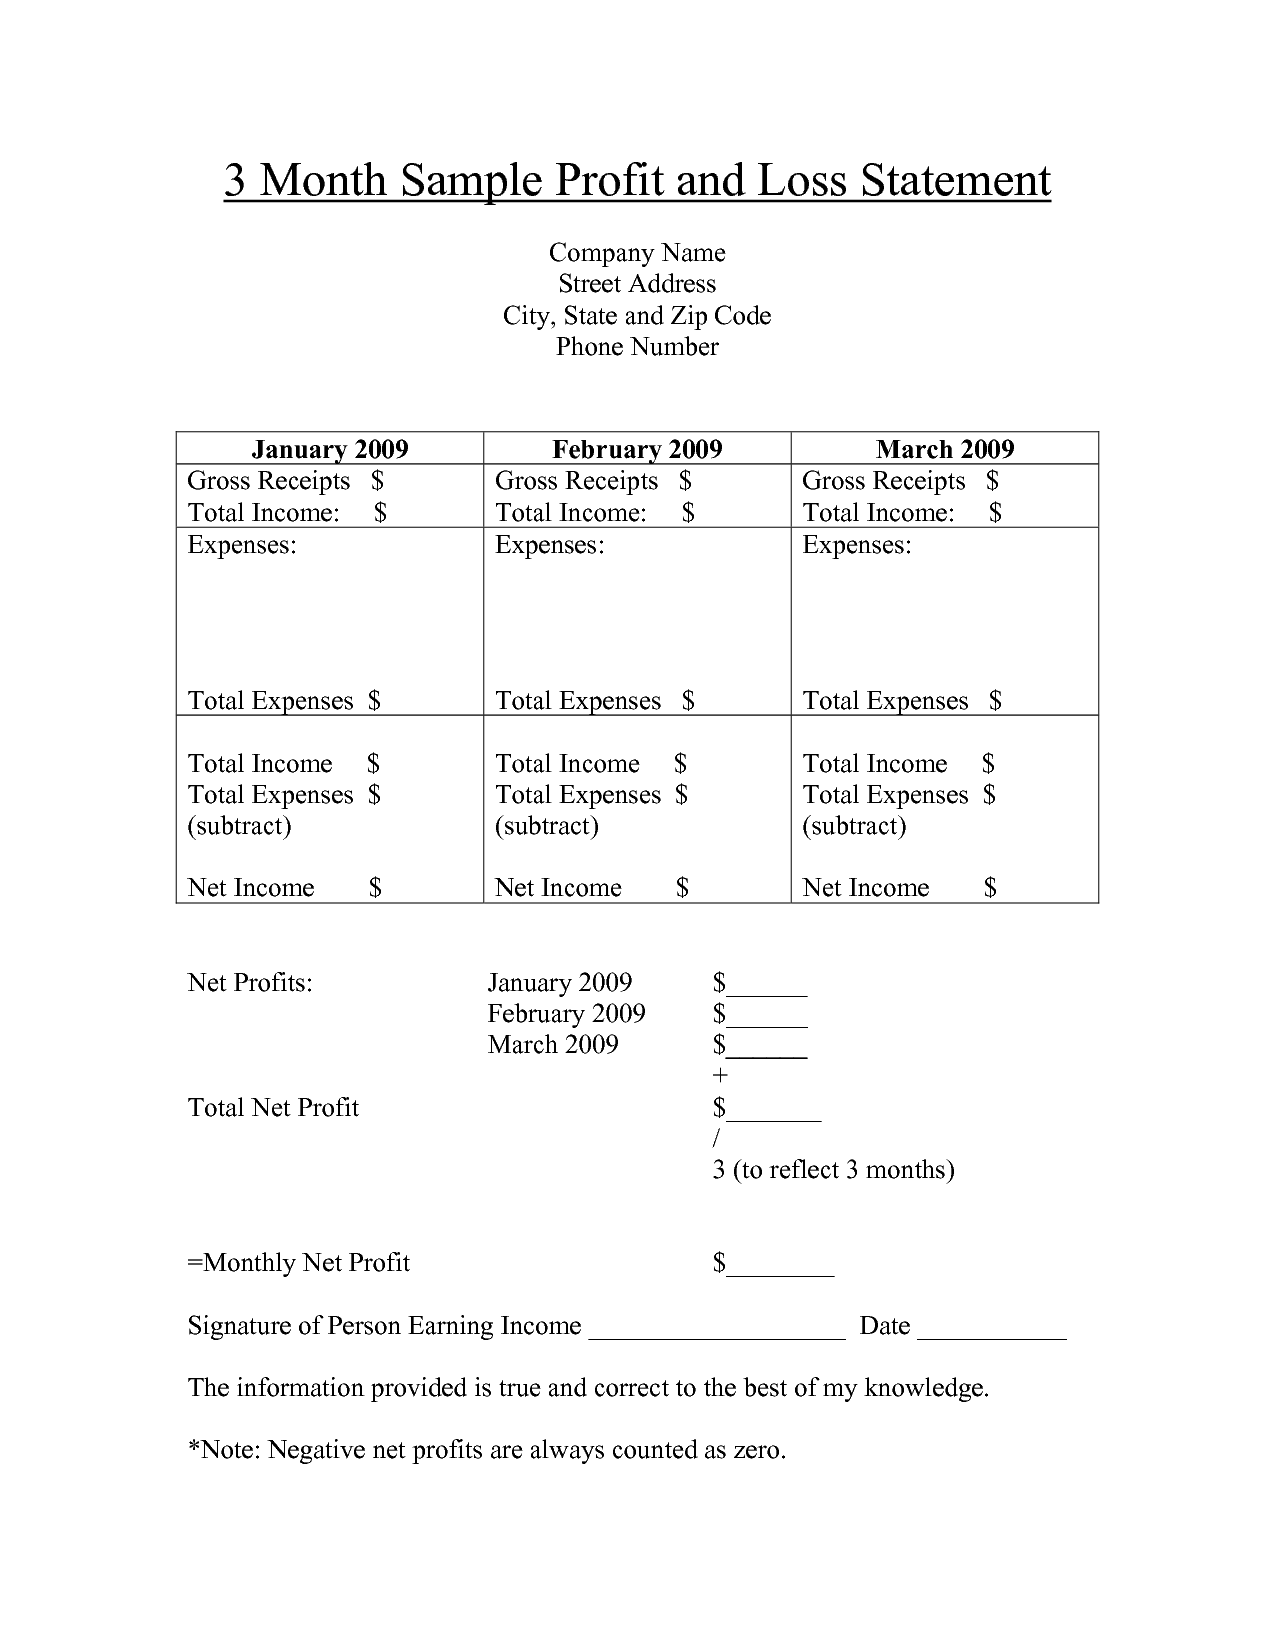 Free Printable Profit and Loss Statement Form for Home Care Bing – Free Printable Profit and Loss Statement